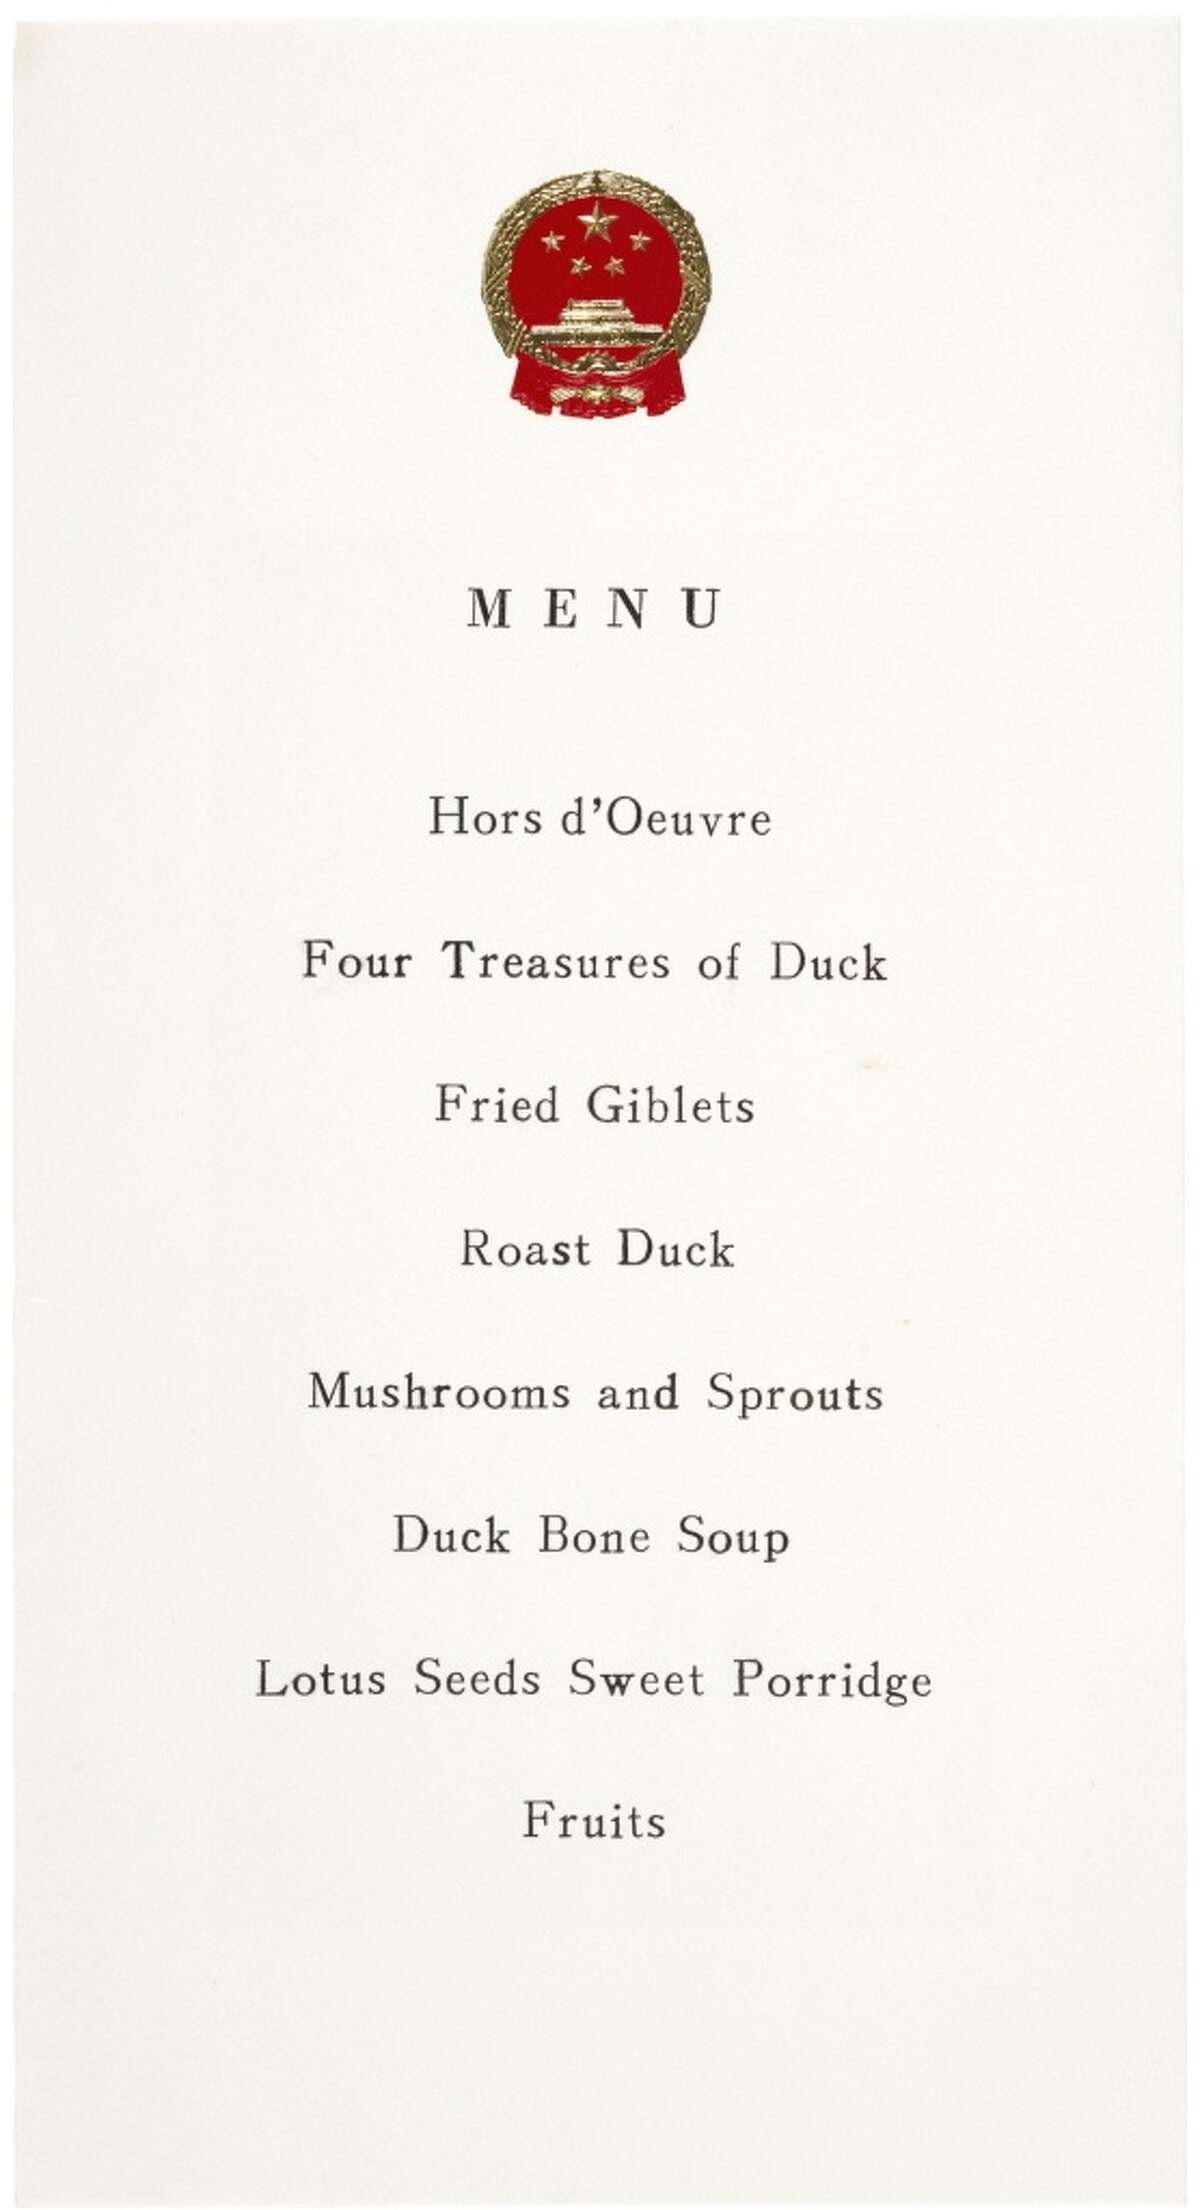 This dinner Menu from President Nixon's visit to China in 1972 inspired many to come to Chinatown looking for woks, the reason Chan first opened her store.